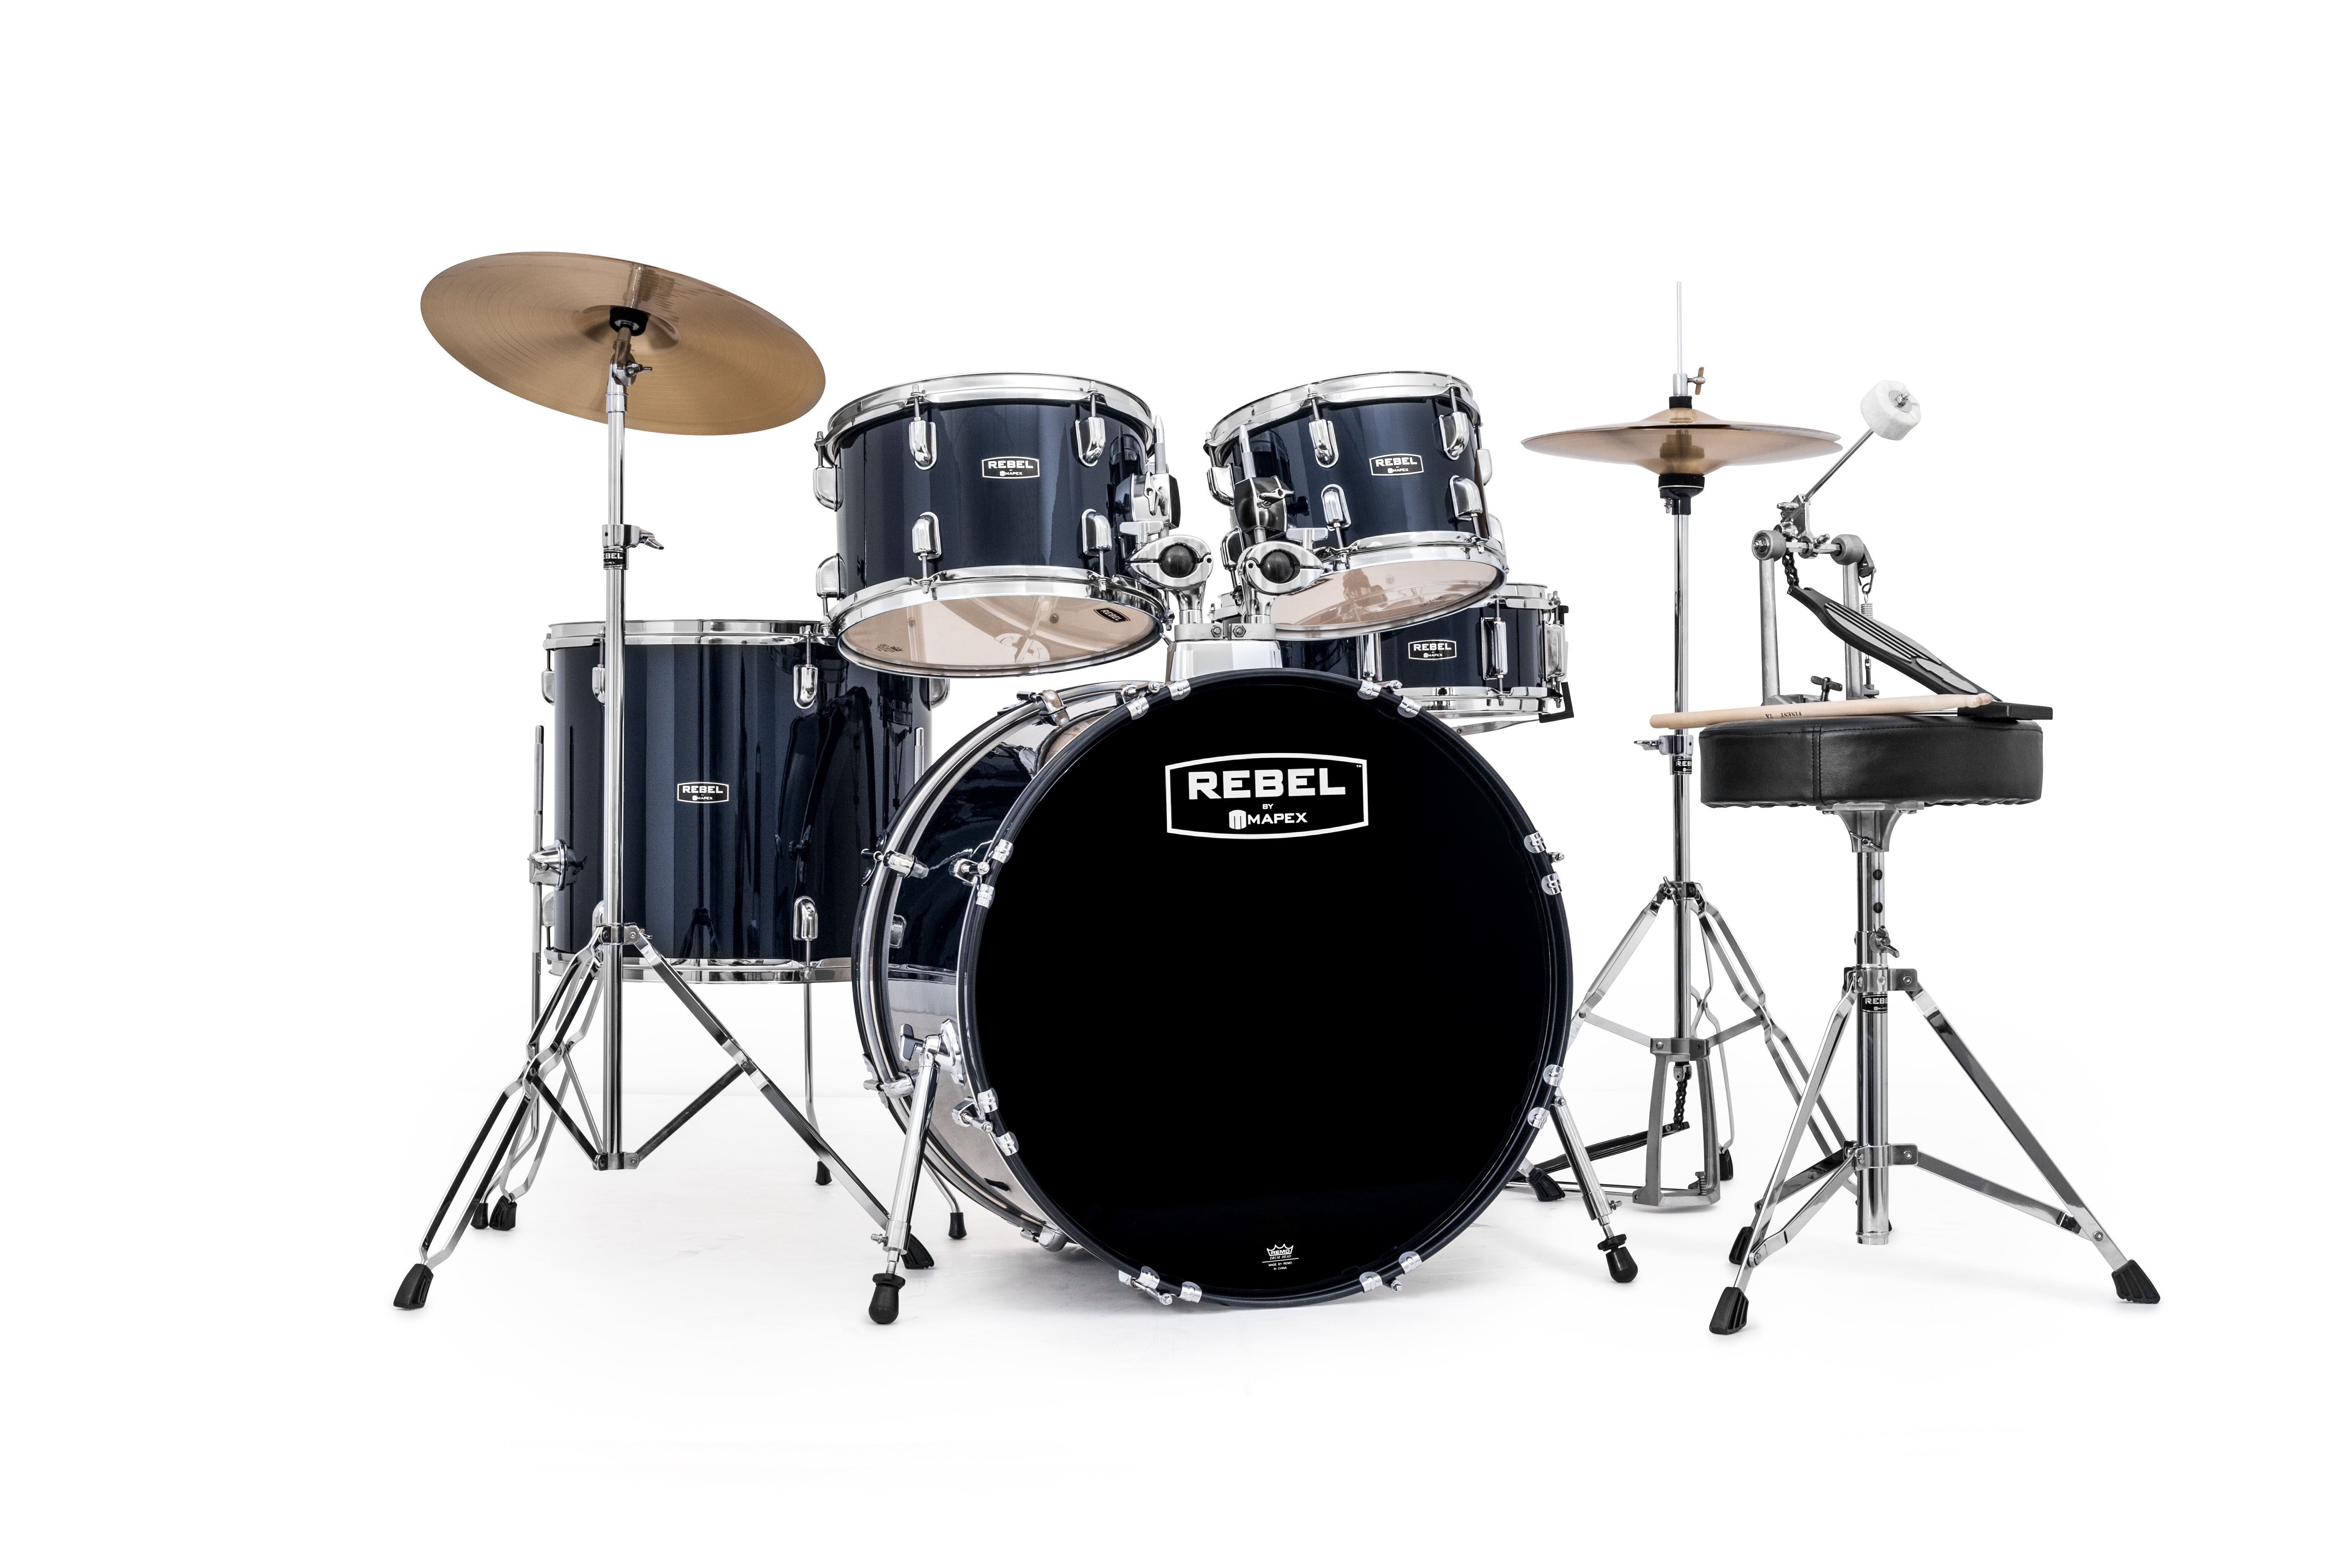 Mapex Rebel 5-piece SRO Complete Set Up with Fast Size Toms - RB5294FTCYB - Royal Blue